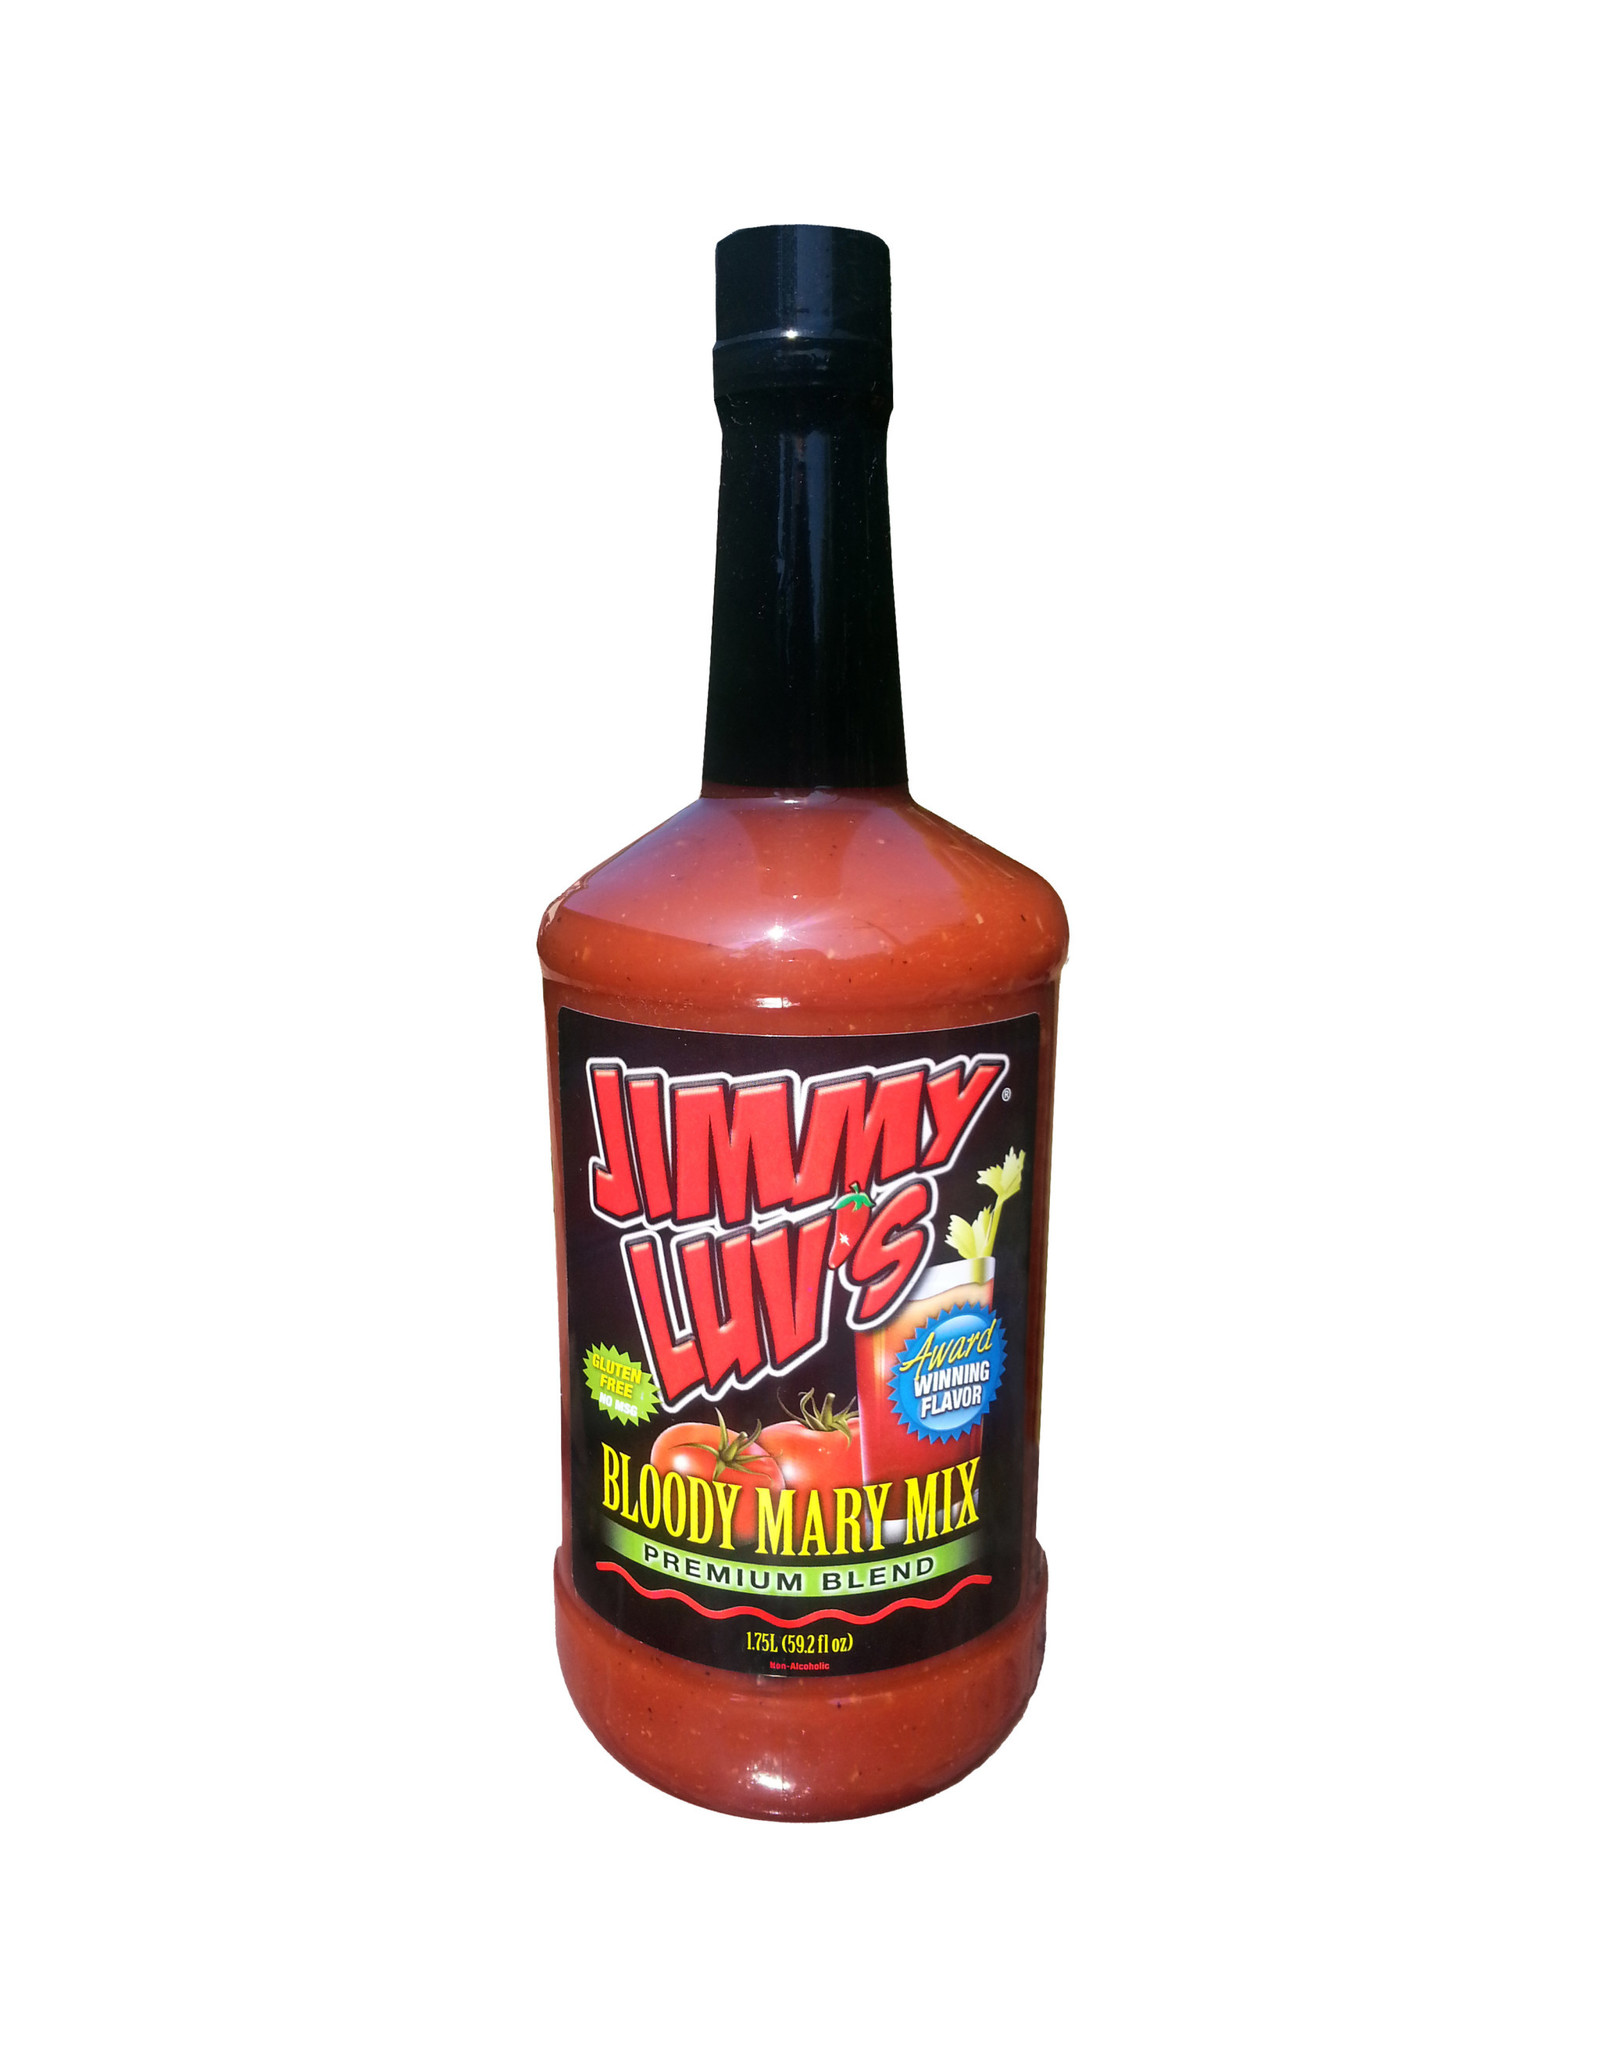 JIMMY LUV'S BLOODY MARY MIX 1.75